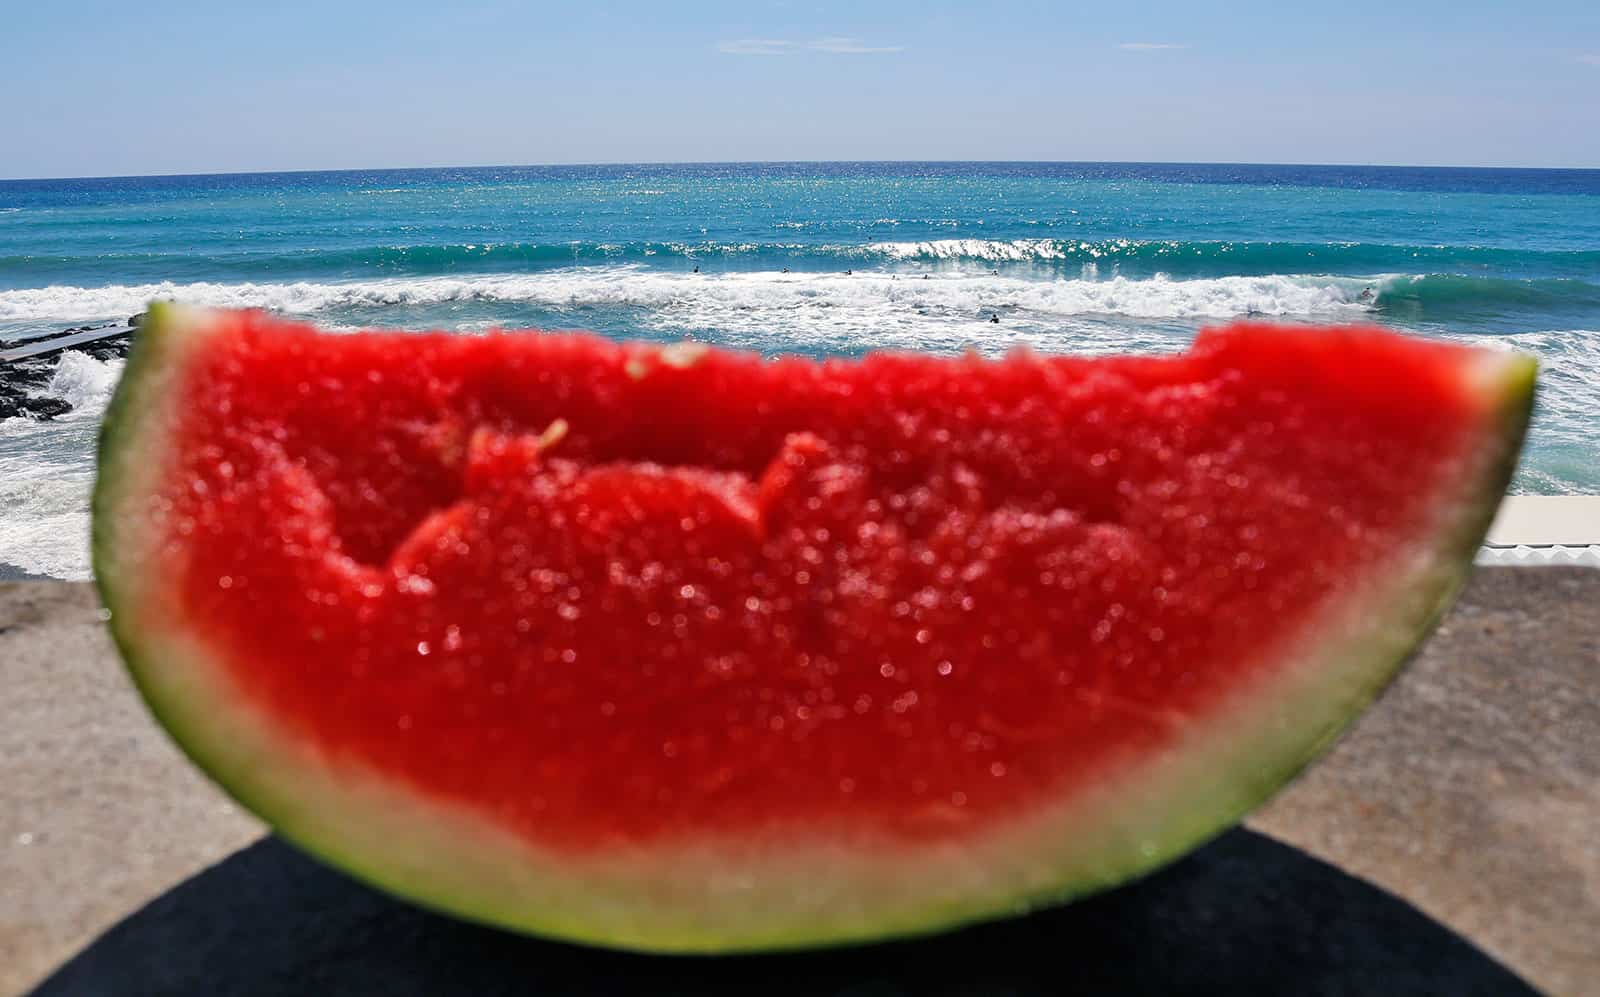 Waves and watermelons.